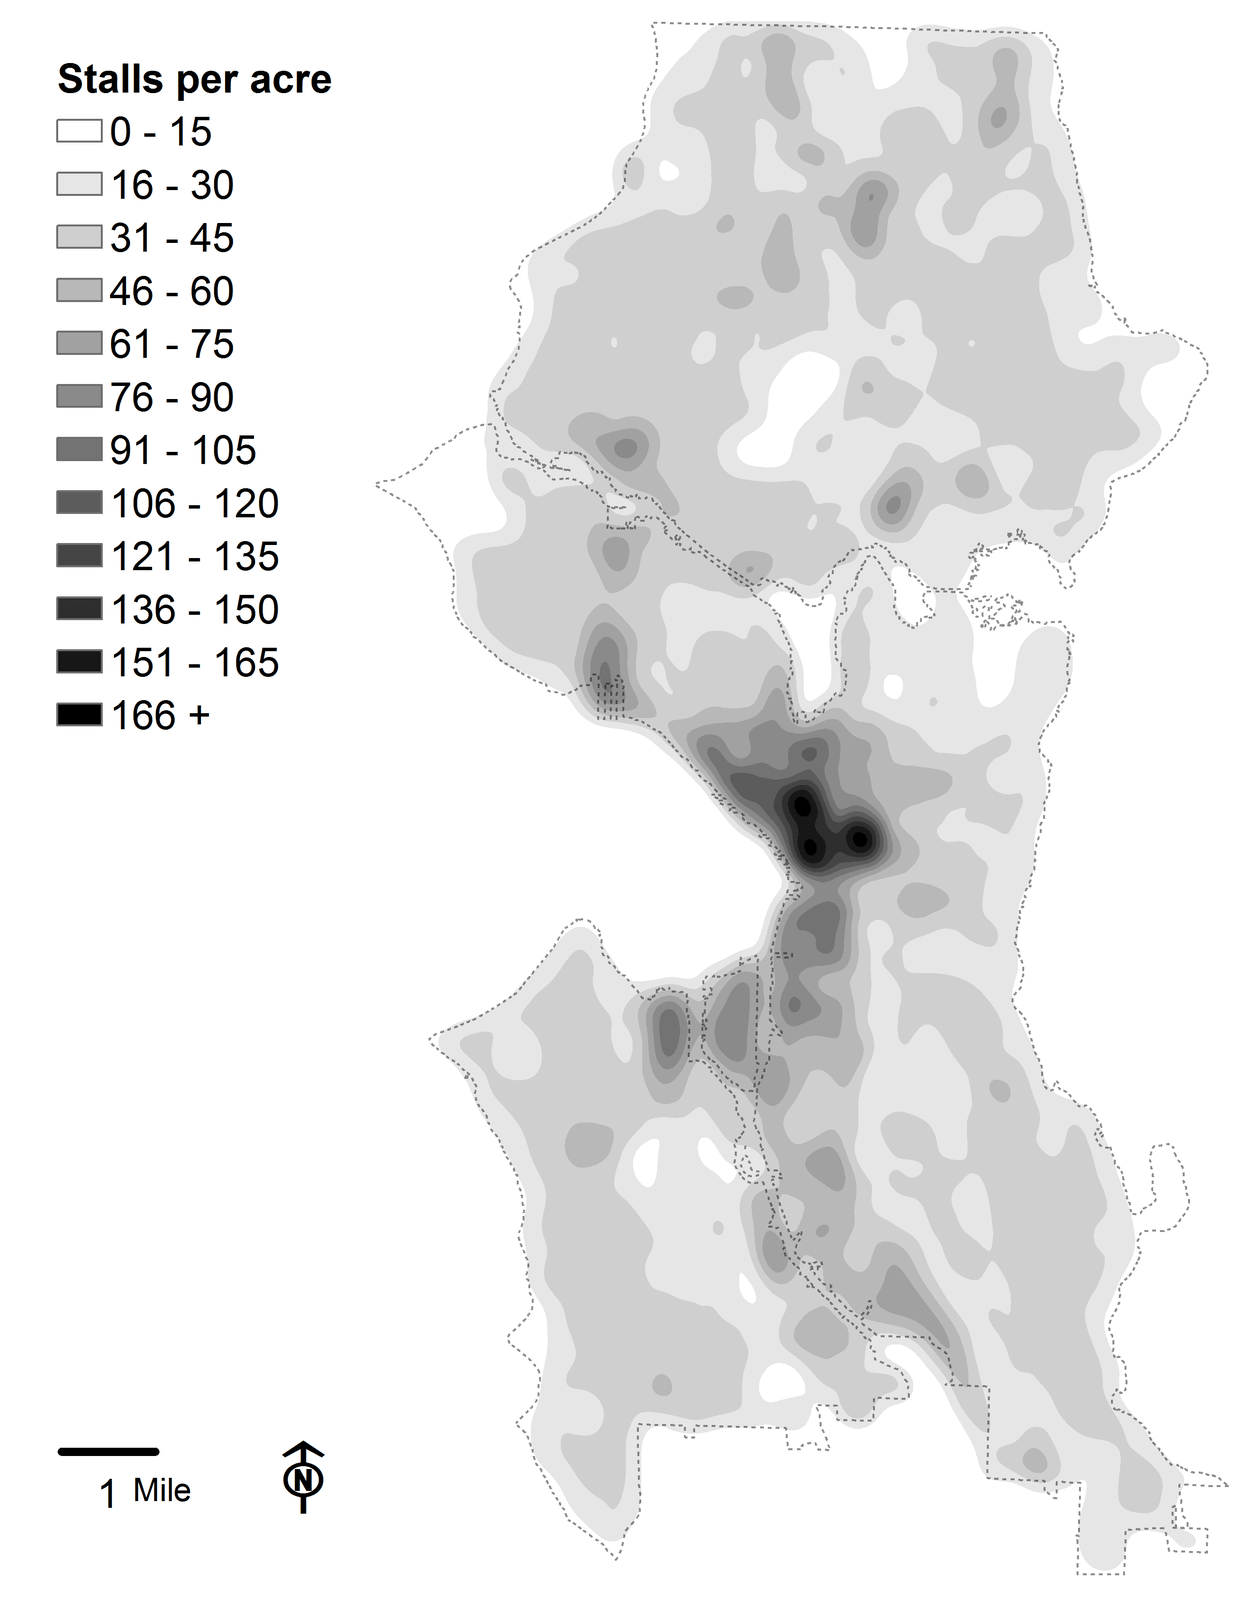 High-resolution map of parking density in Seattle